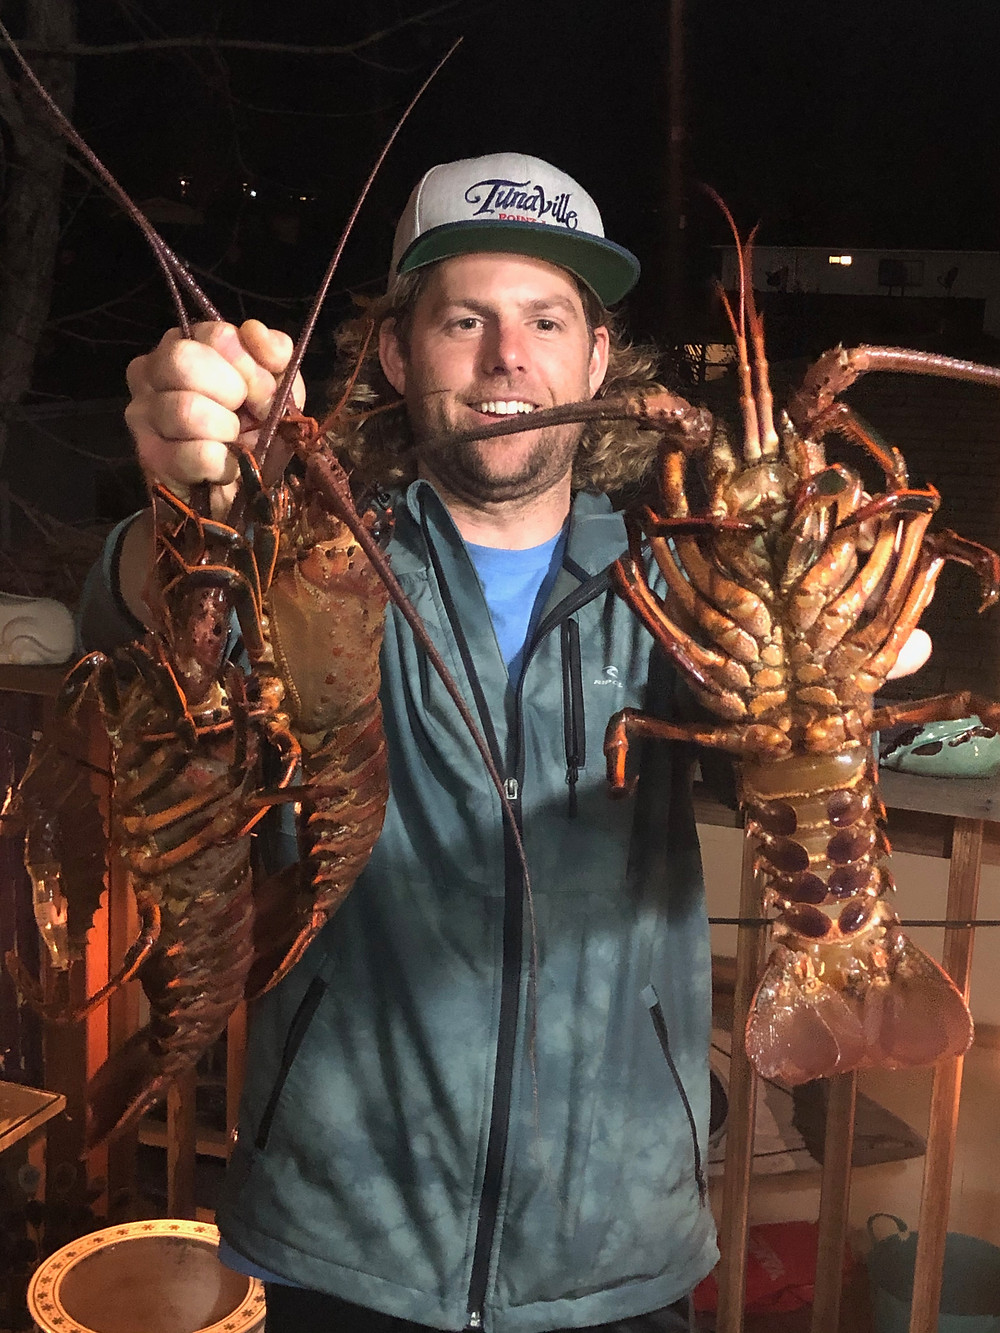 Catch and cook lobsters